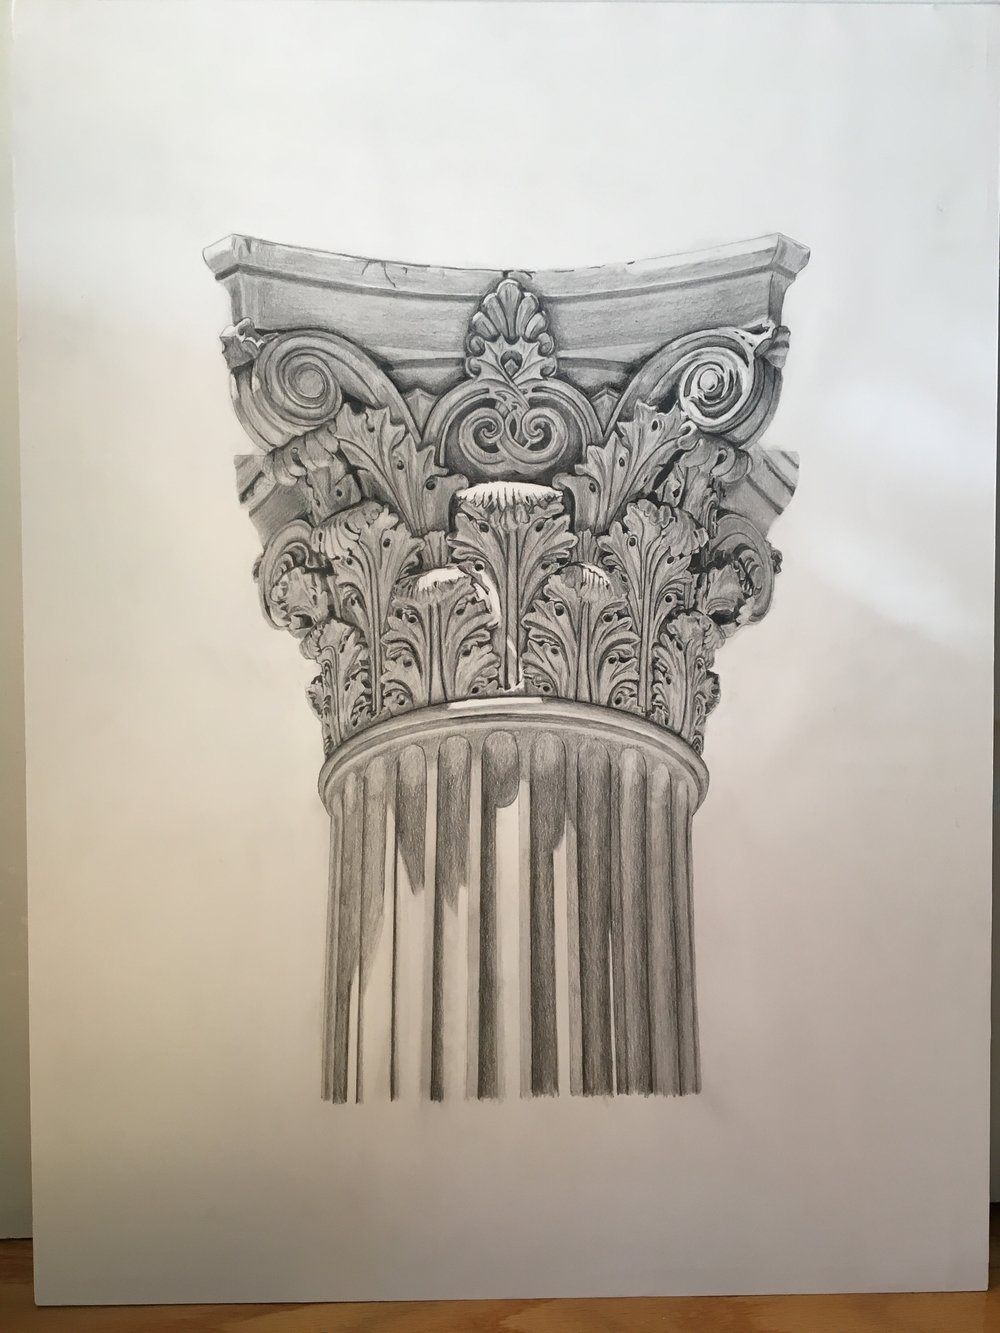 "Corinthian capital<br>Pencil on paper mounted on 18"" x 24"" masonite"